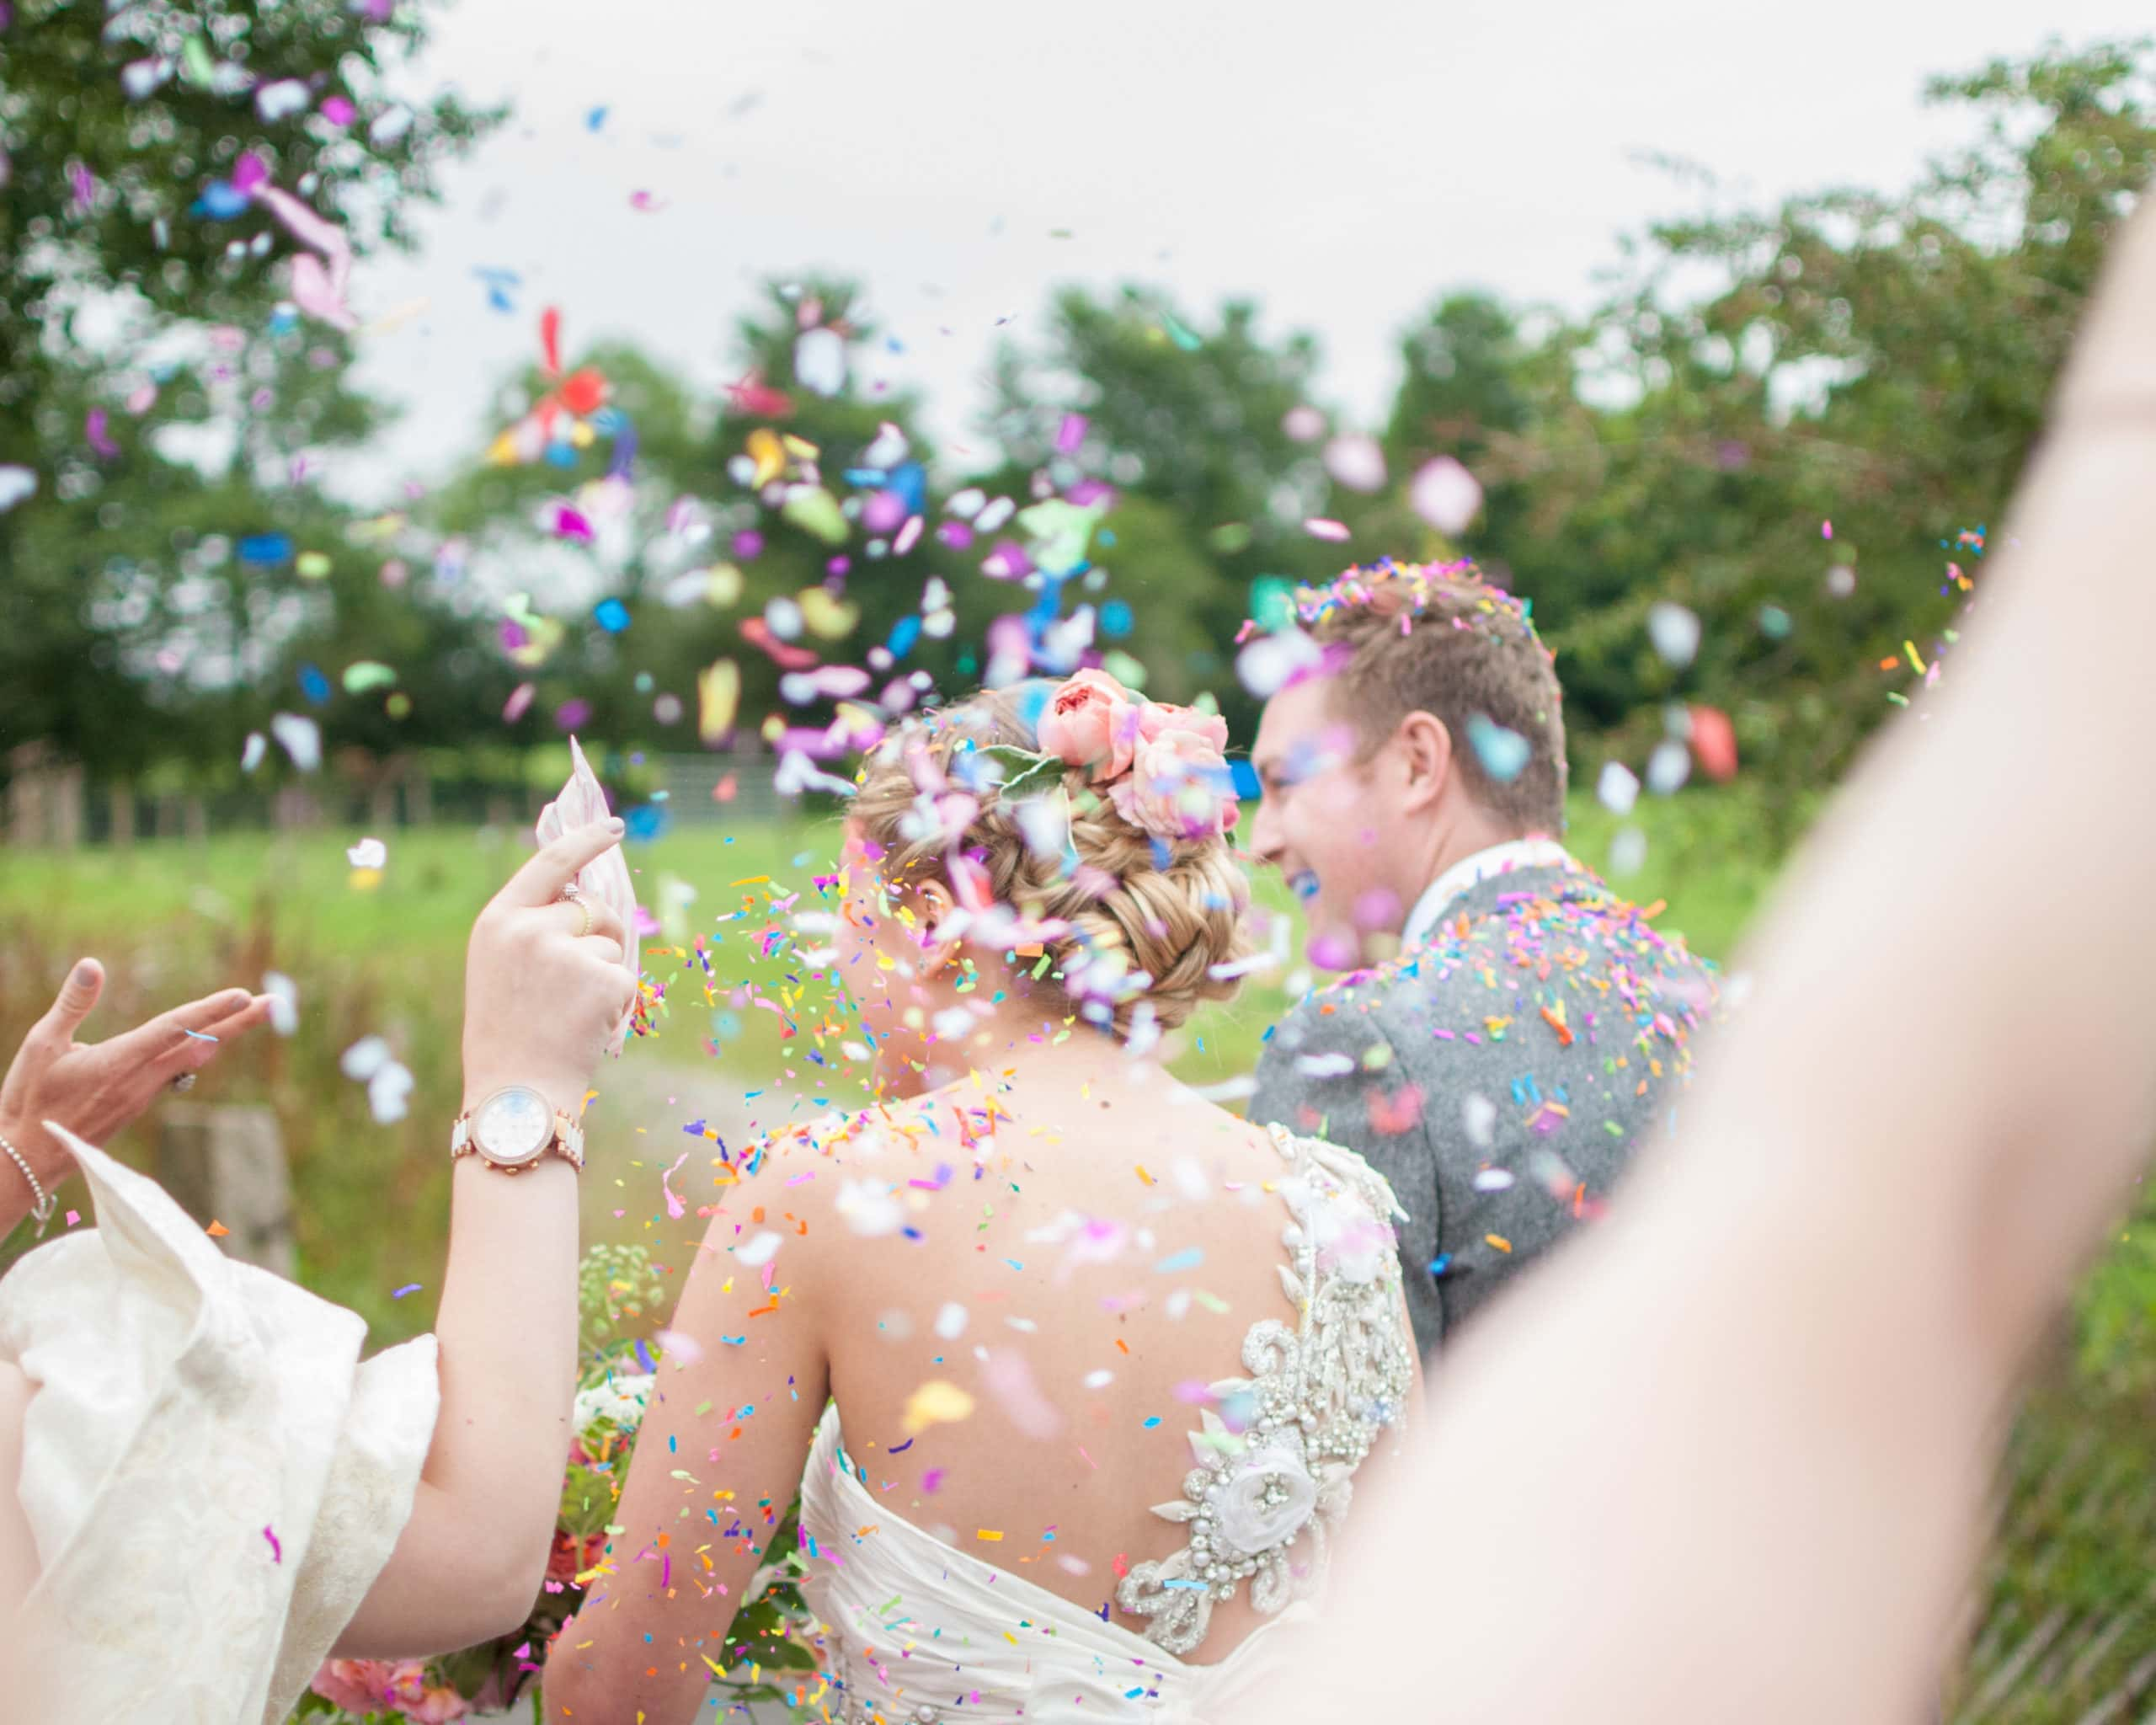 The colour of confetti thrown at a bride and groom.